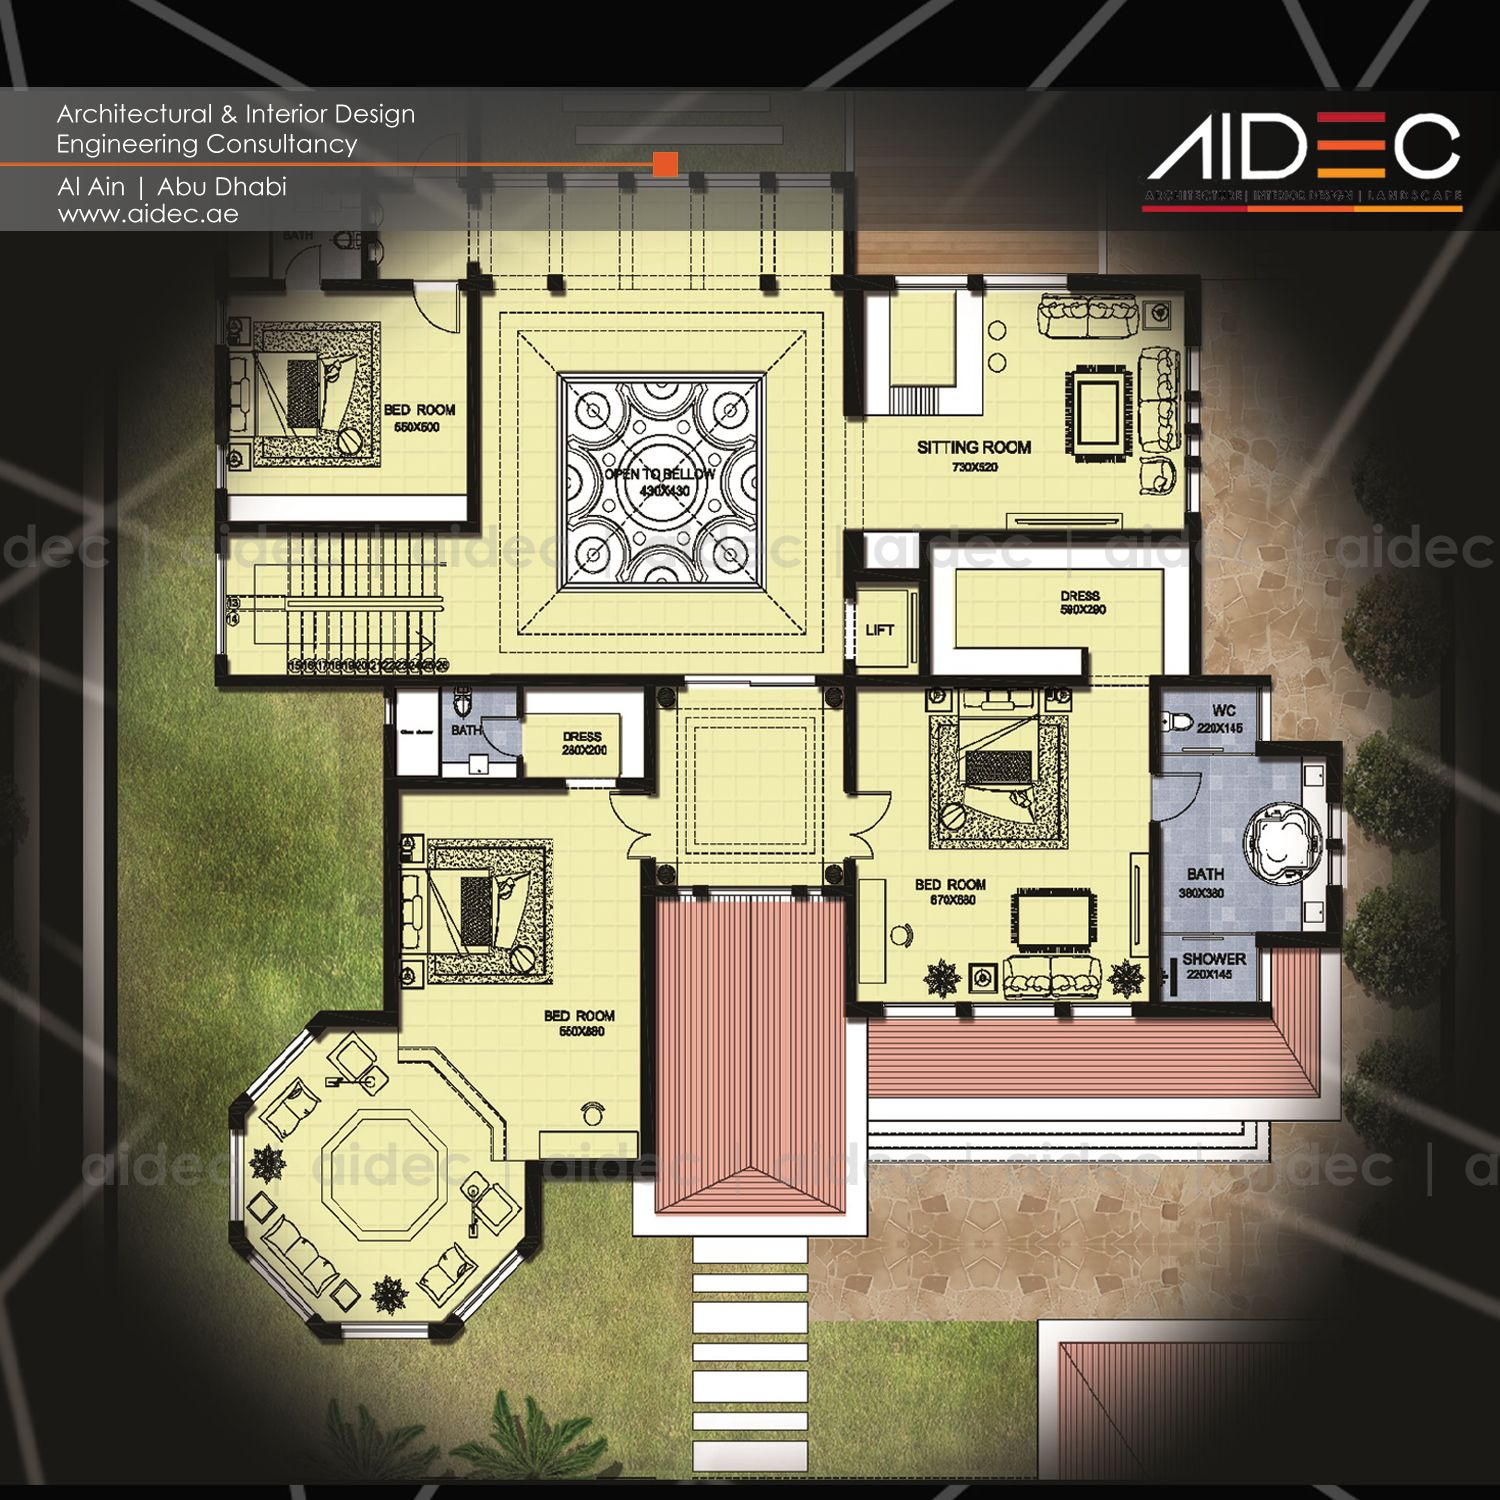 Proposed Residential Villa Floor Plan Location Abu Dhabi Aidec Architecture Design Villa Bui Beautiful House Plans Villa Plan Floor Plans